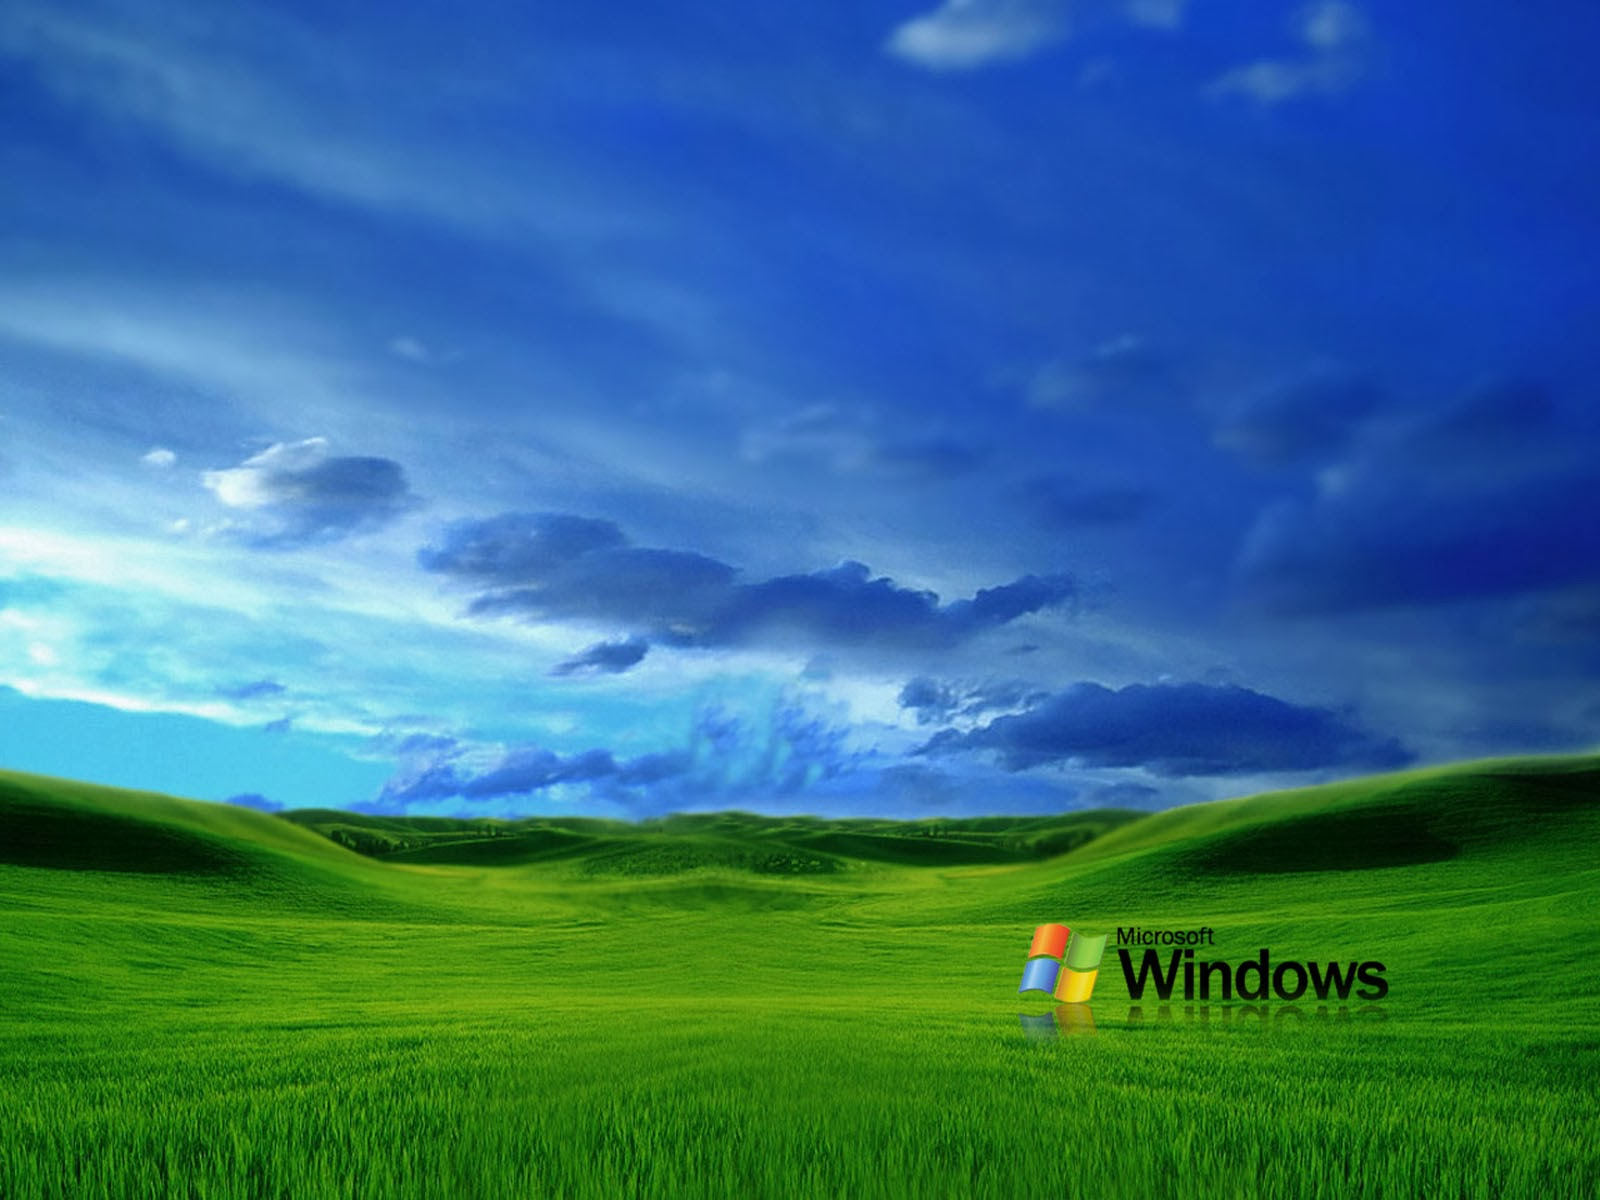 free xp wallpapers download - photo #7